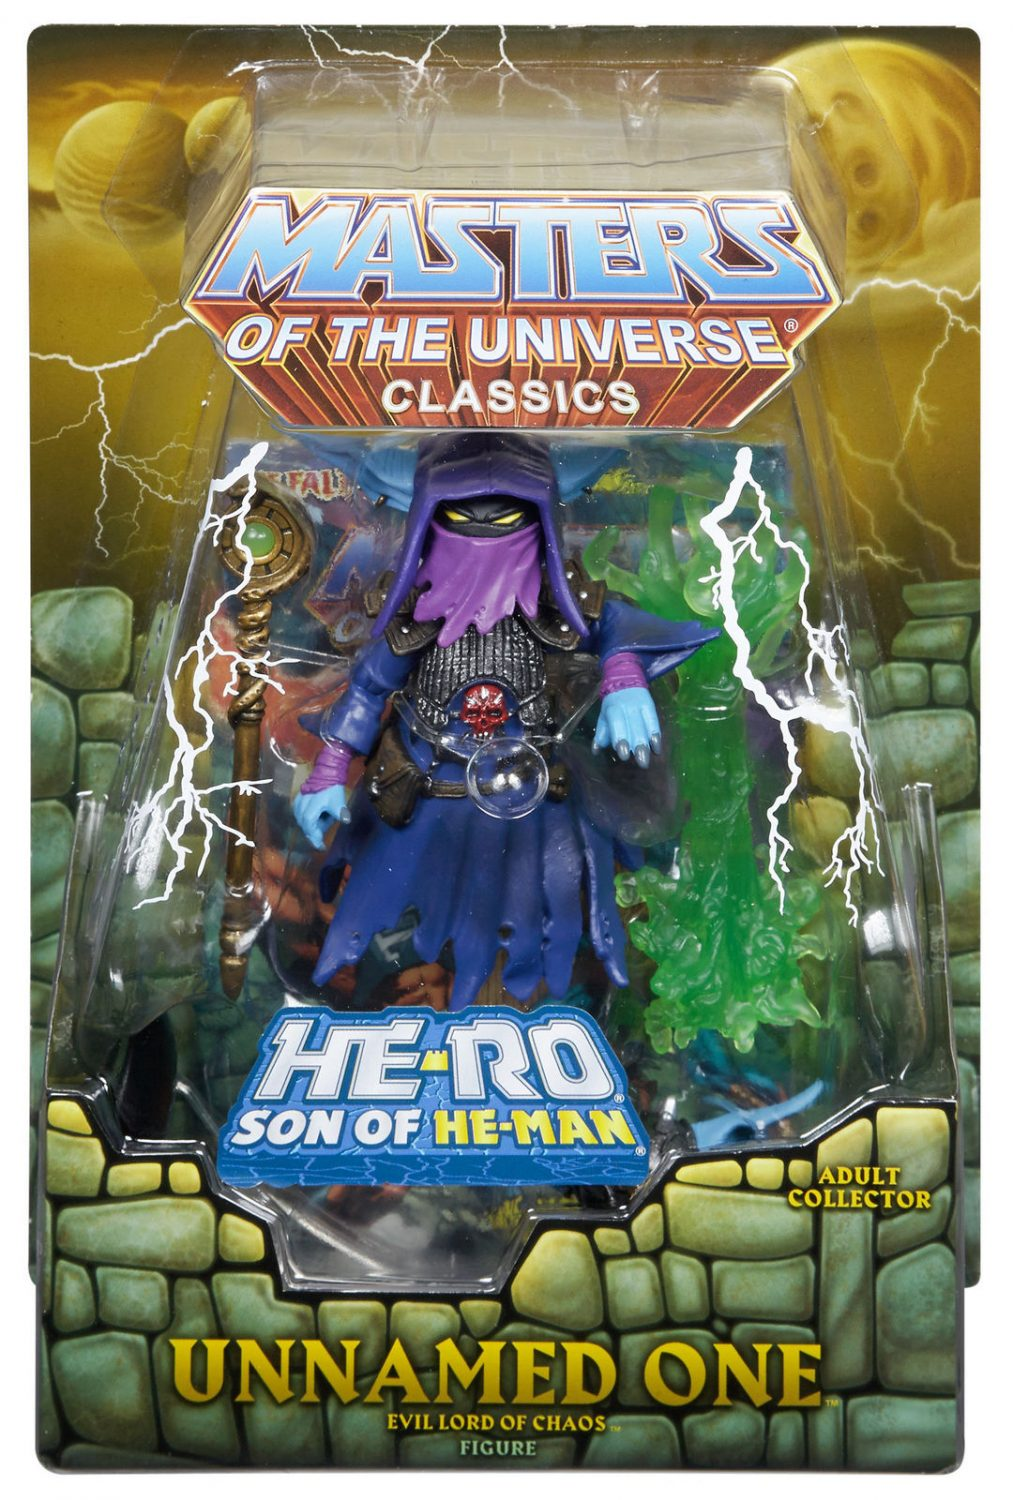 Mattel Masters Of The Universe Classics Unnamed One Figure Listed On Their eBay Store